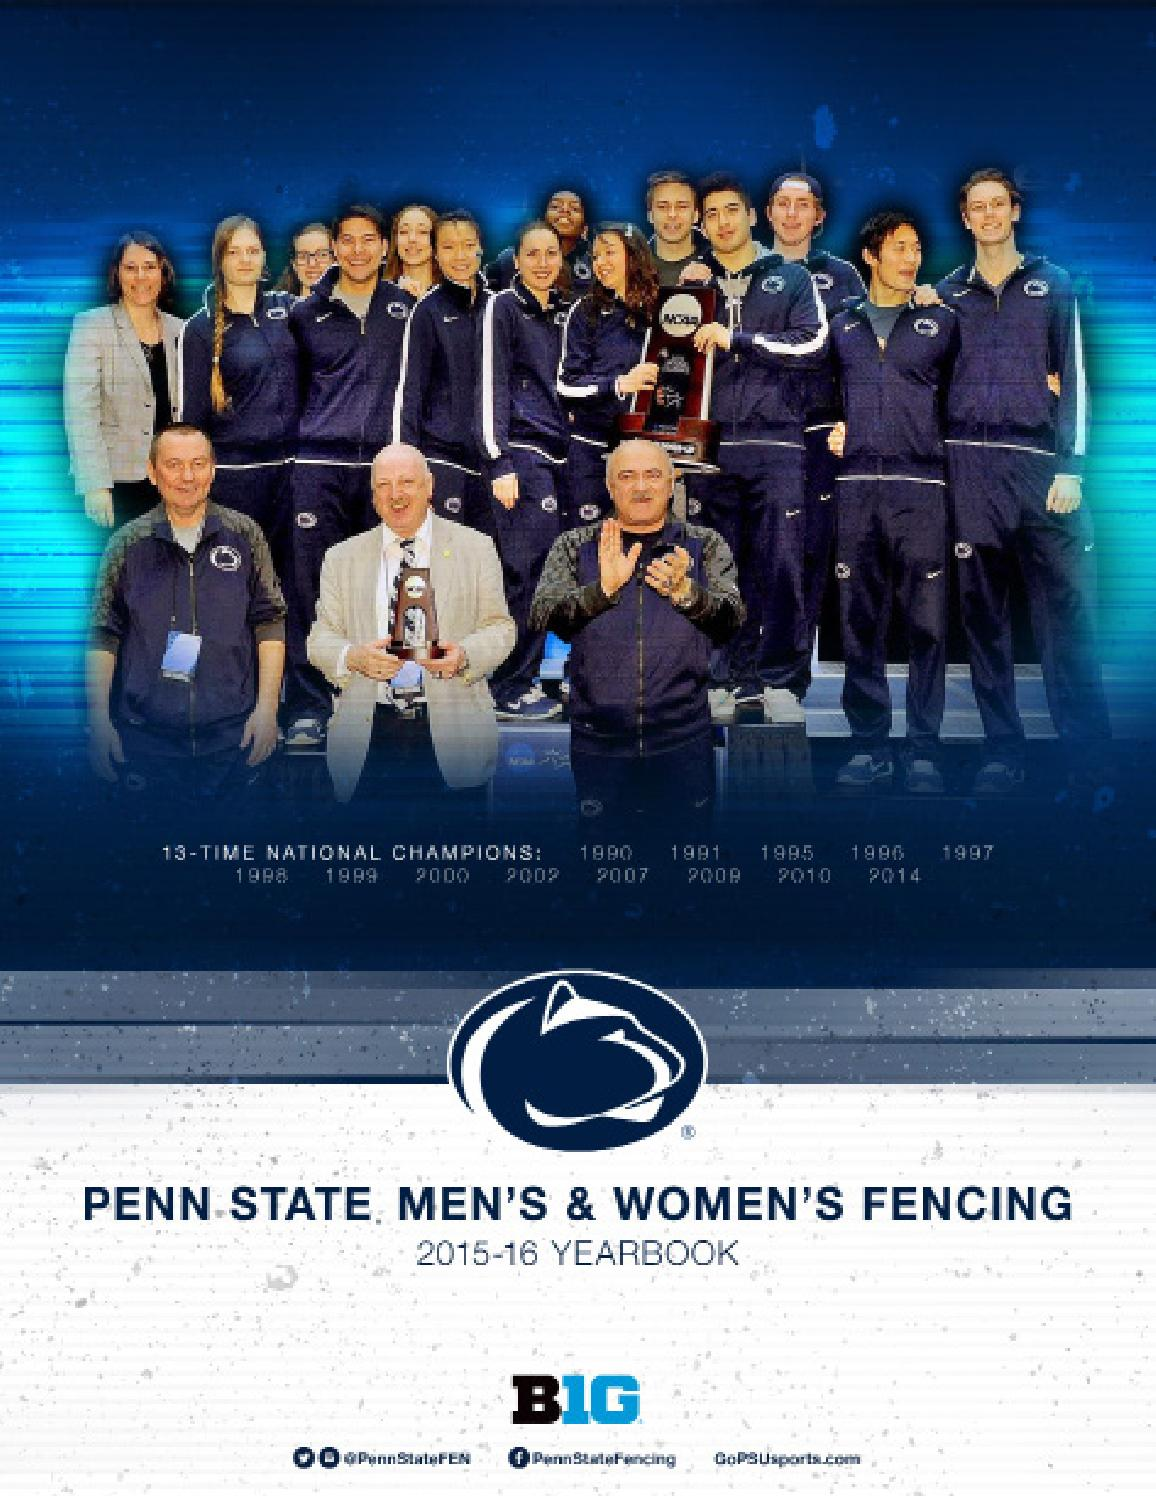 Penn State Fencing 2015 16 Yearbook By Penn State